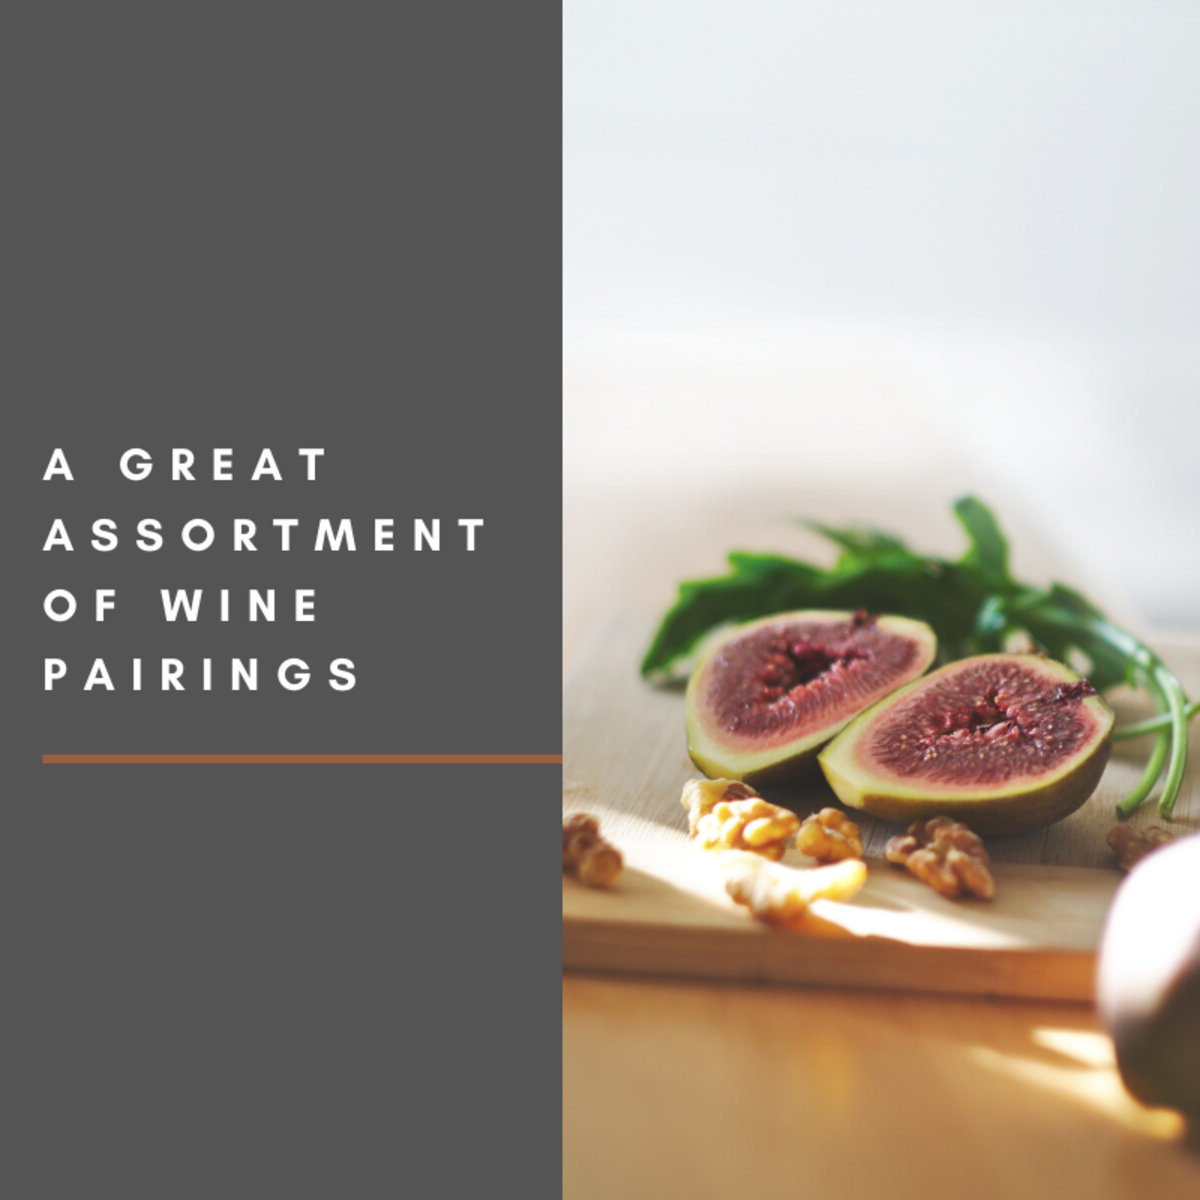 These great wine pairings are sure to make you feel satisfied.